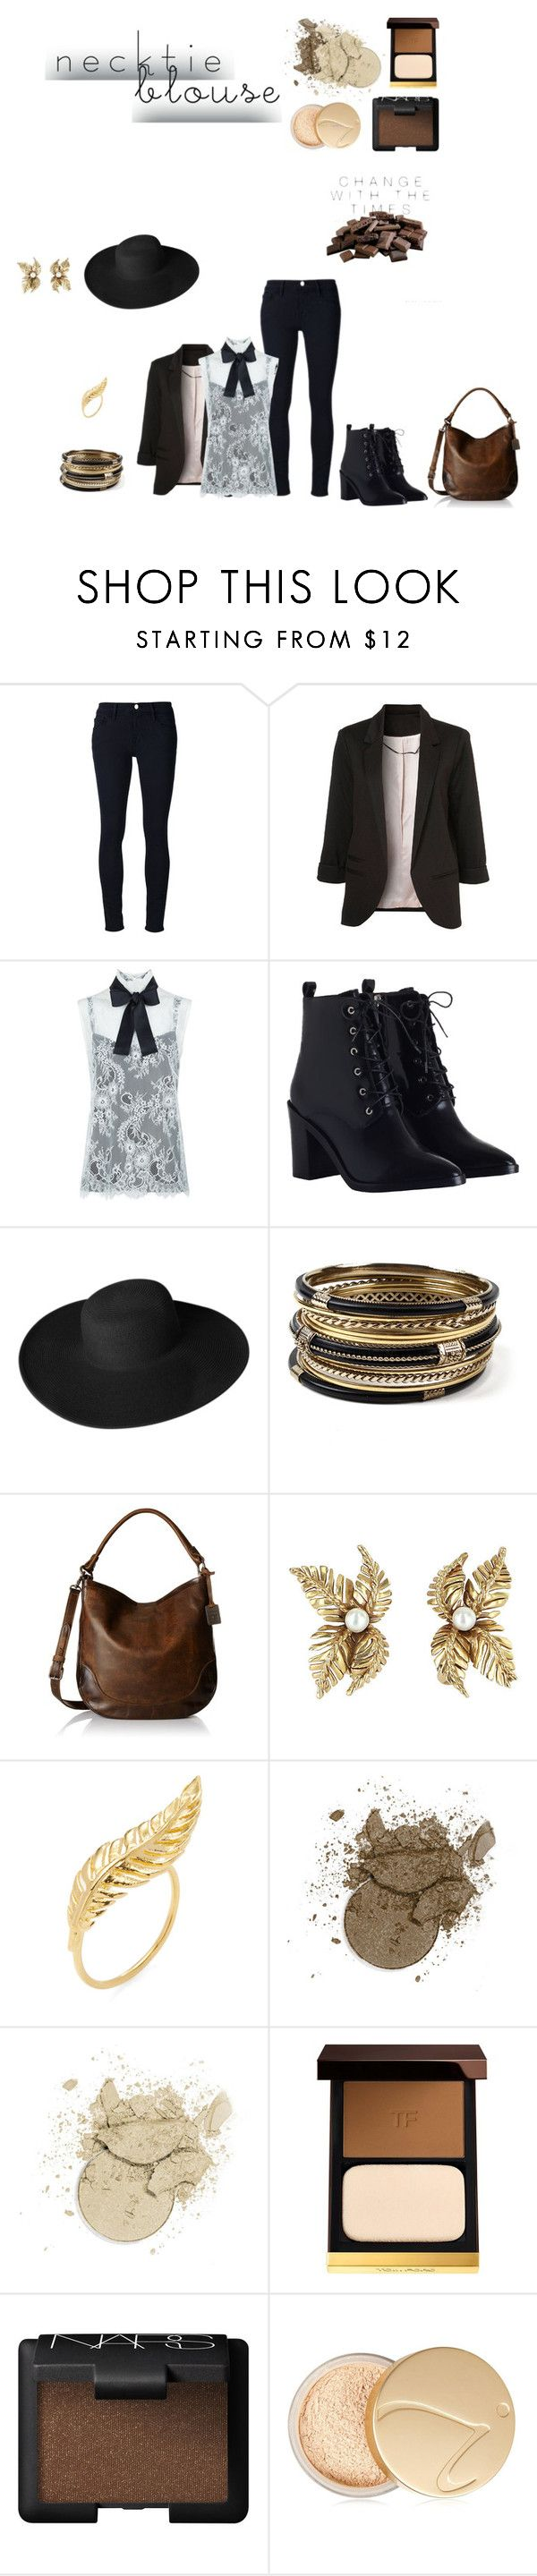 """Trend to Try: Necktie Blouse"" by mya-zari ❤ liked on Polyvore featuring Frame Denim, WithChic, Philosophy di Lorenzo Serafini, Zimmermann, Dorfman Pacific, Amrita Singh, Frye, Jacquie Aiche, Tom Ford and NARS Cosmetics"